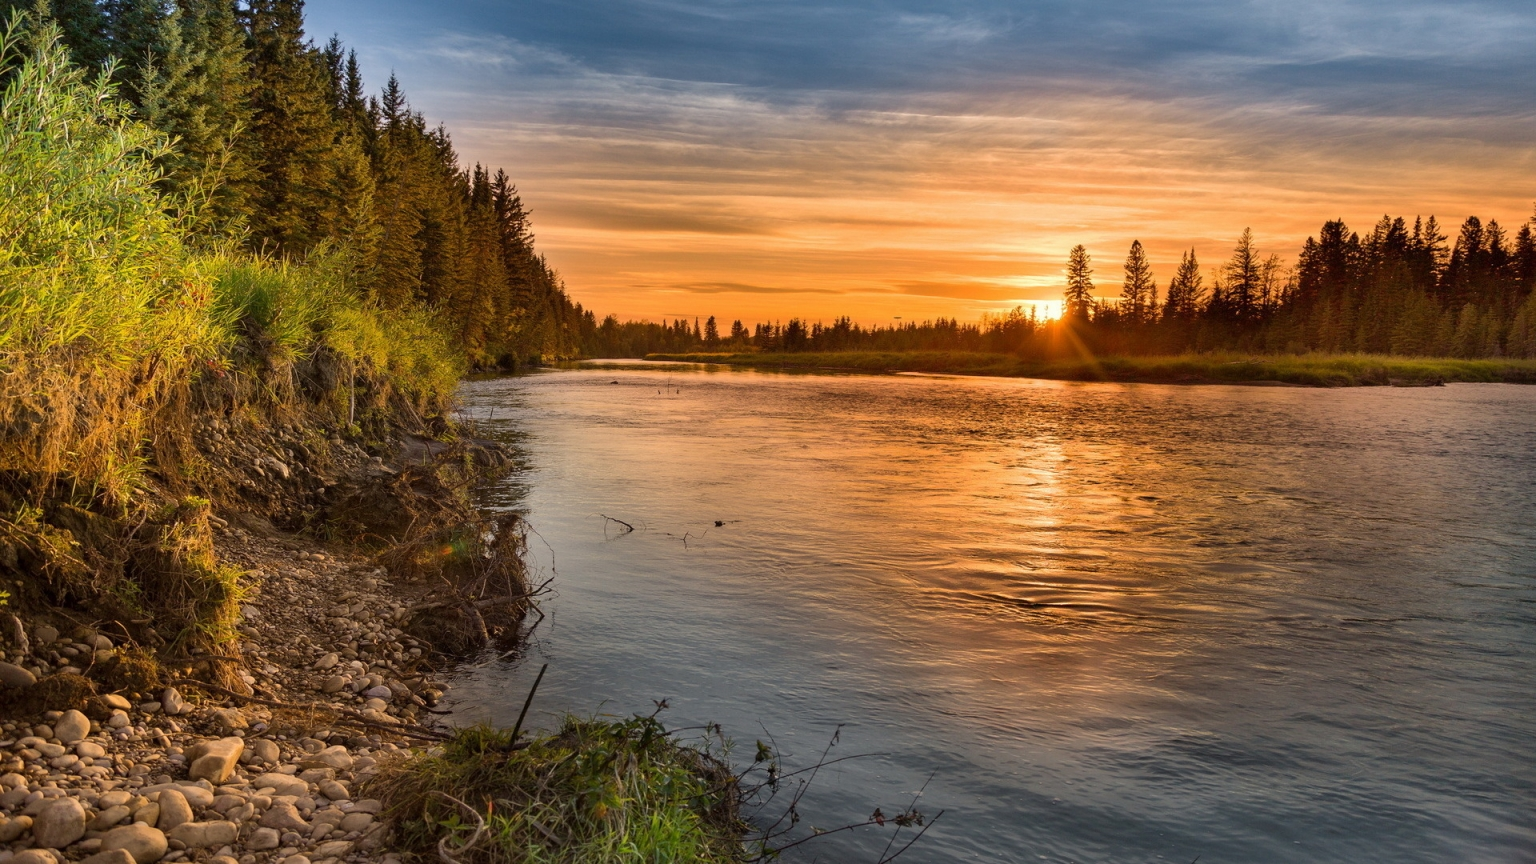 Wonderful Sunset Over the River for 1536 x 864 HDTV resolution